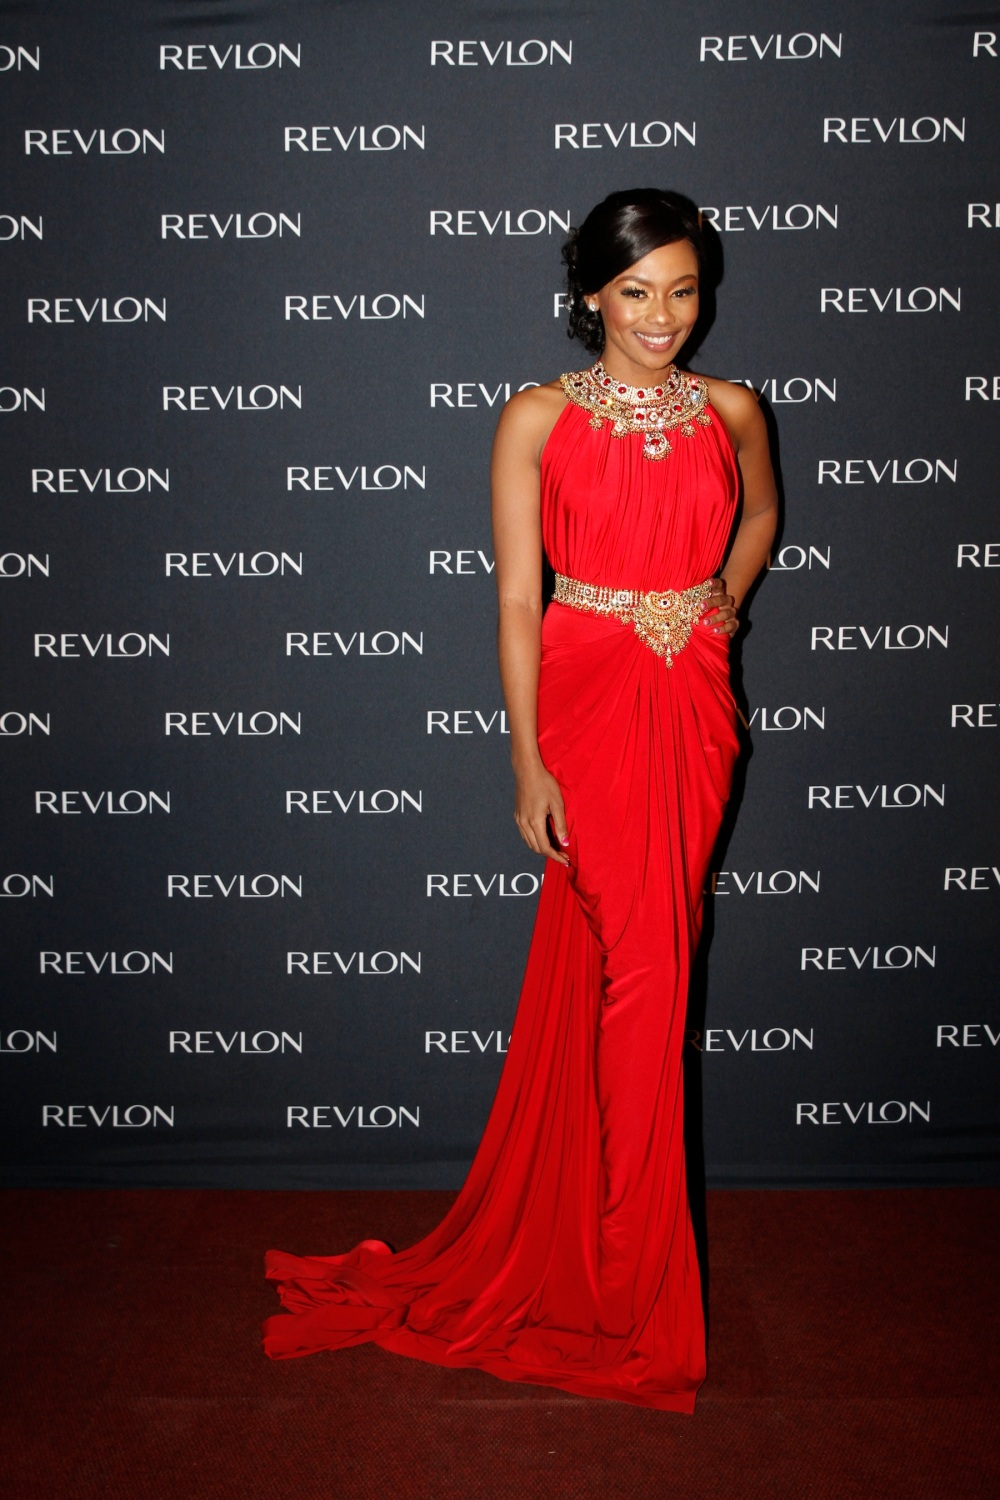 South Africa's 'It' Girl Bonang Matheba is up for the Drama Queen Award at the Feathers this year